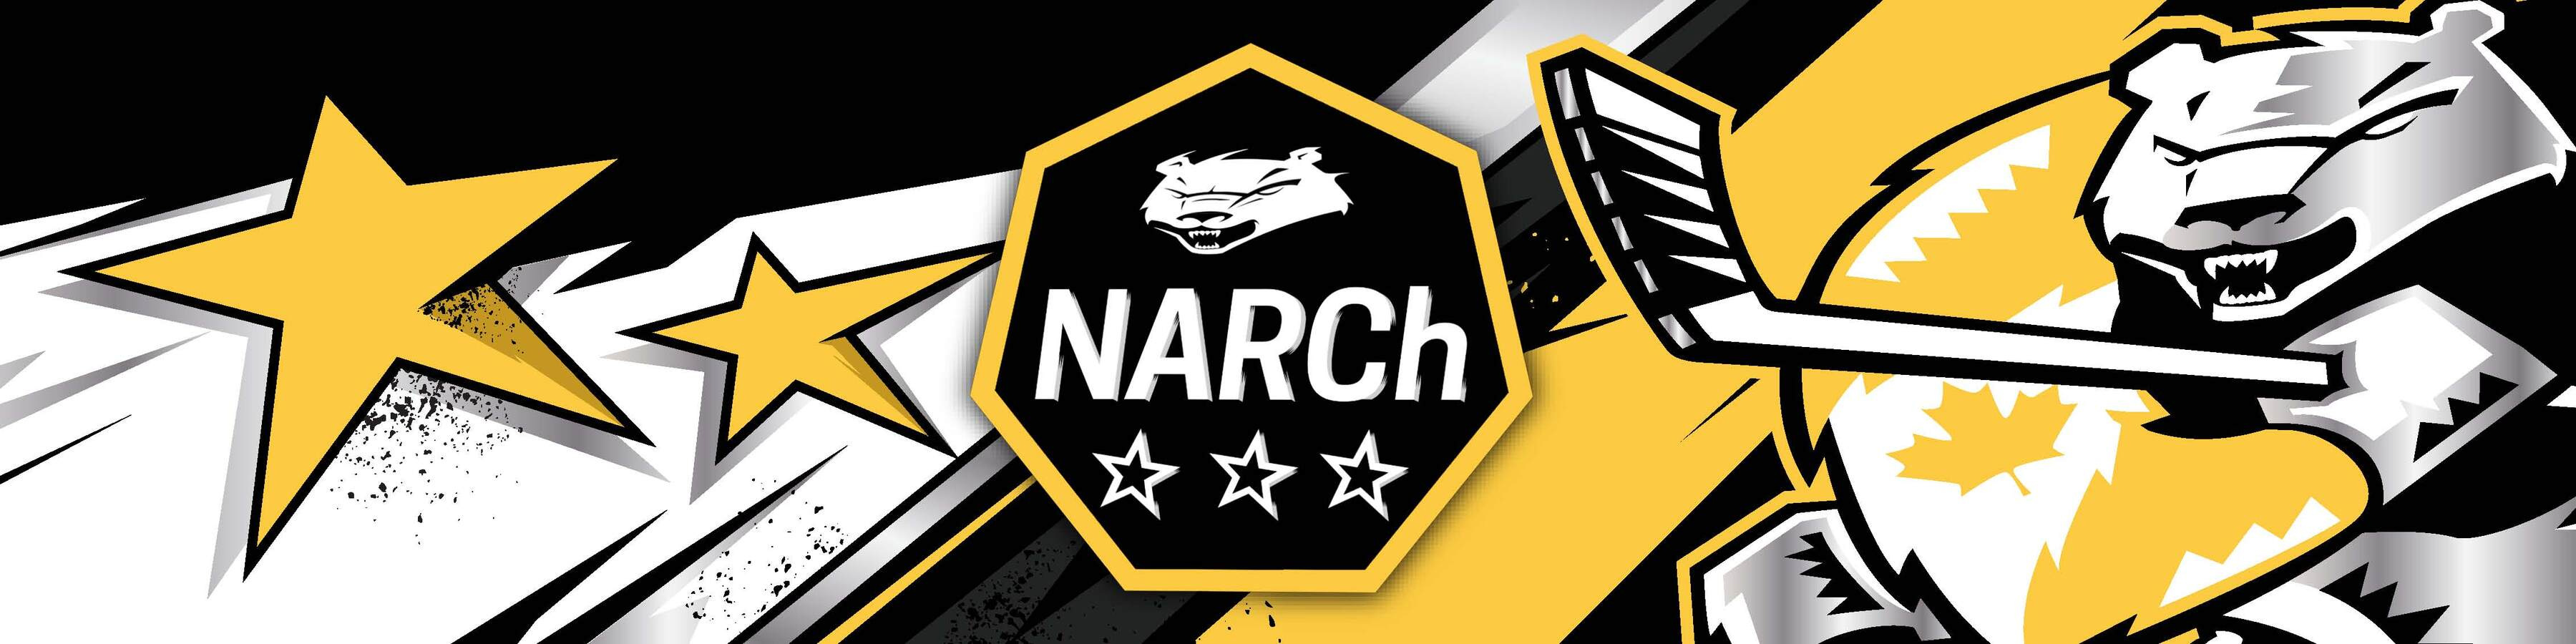 NARCh082219banner